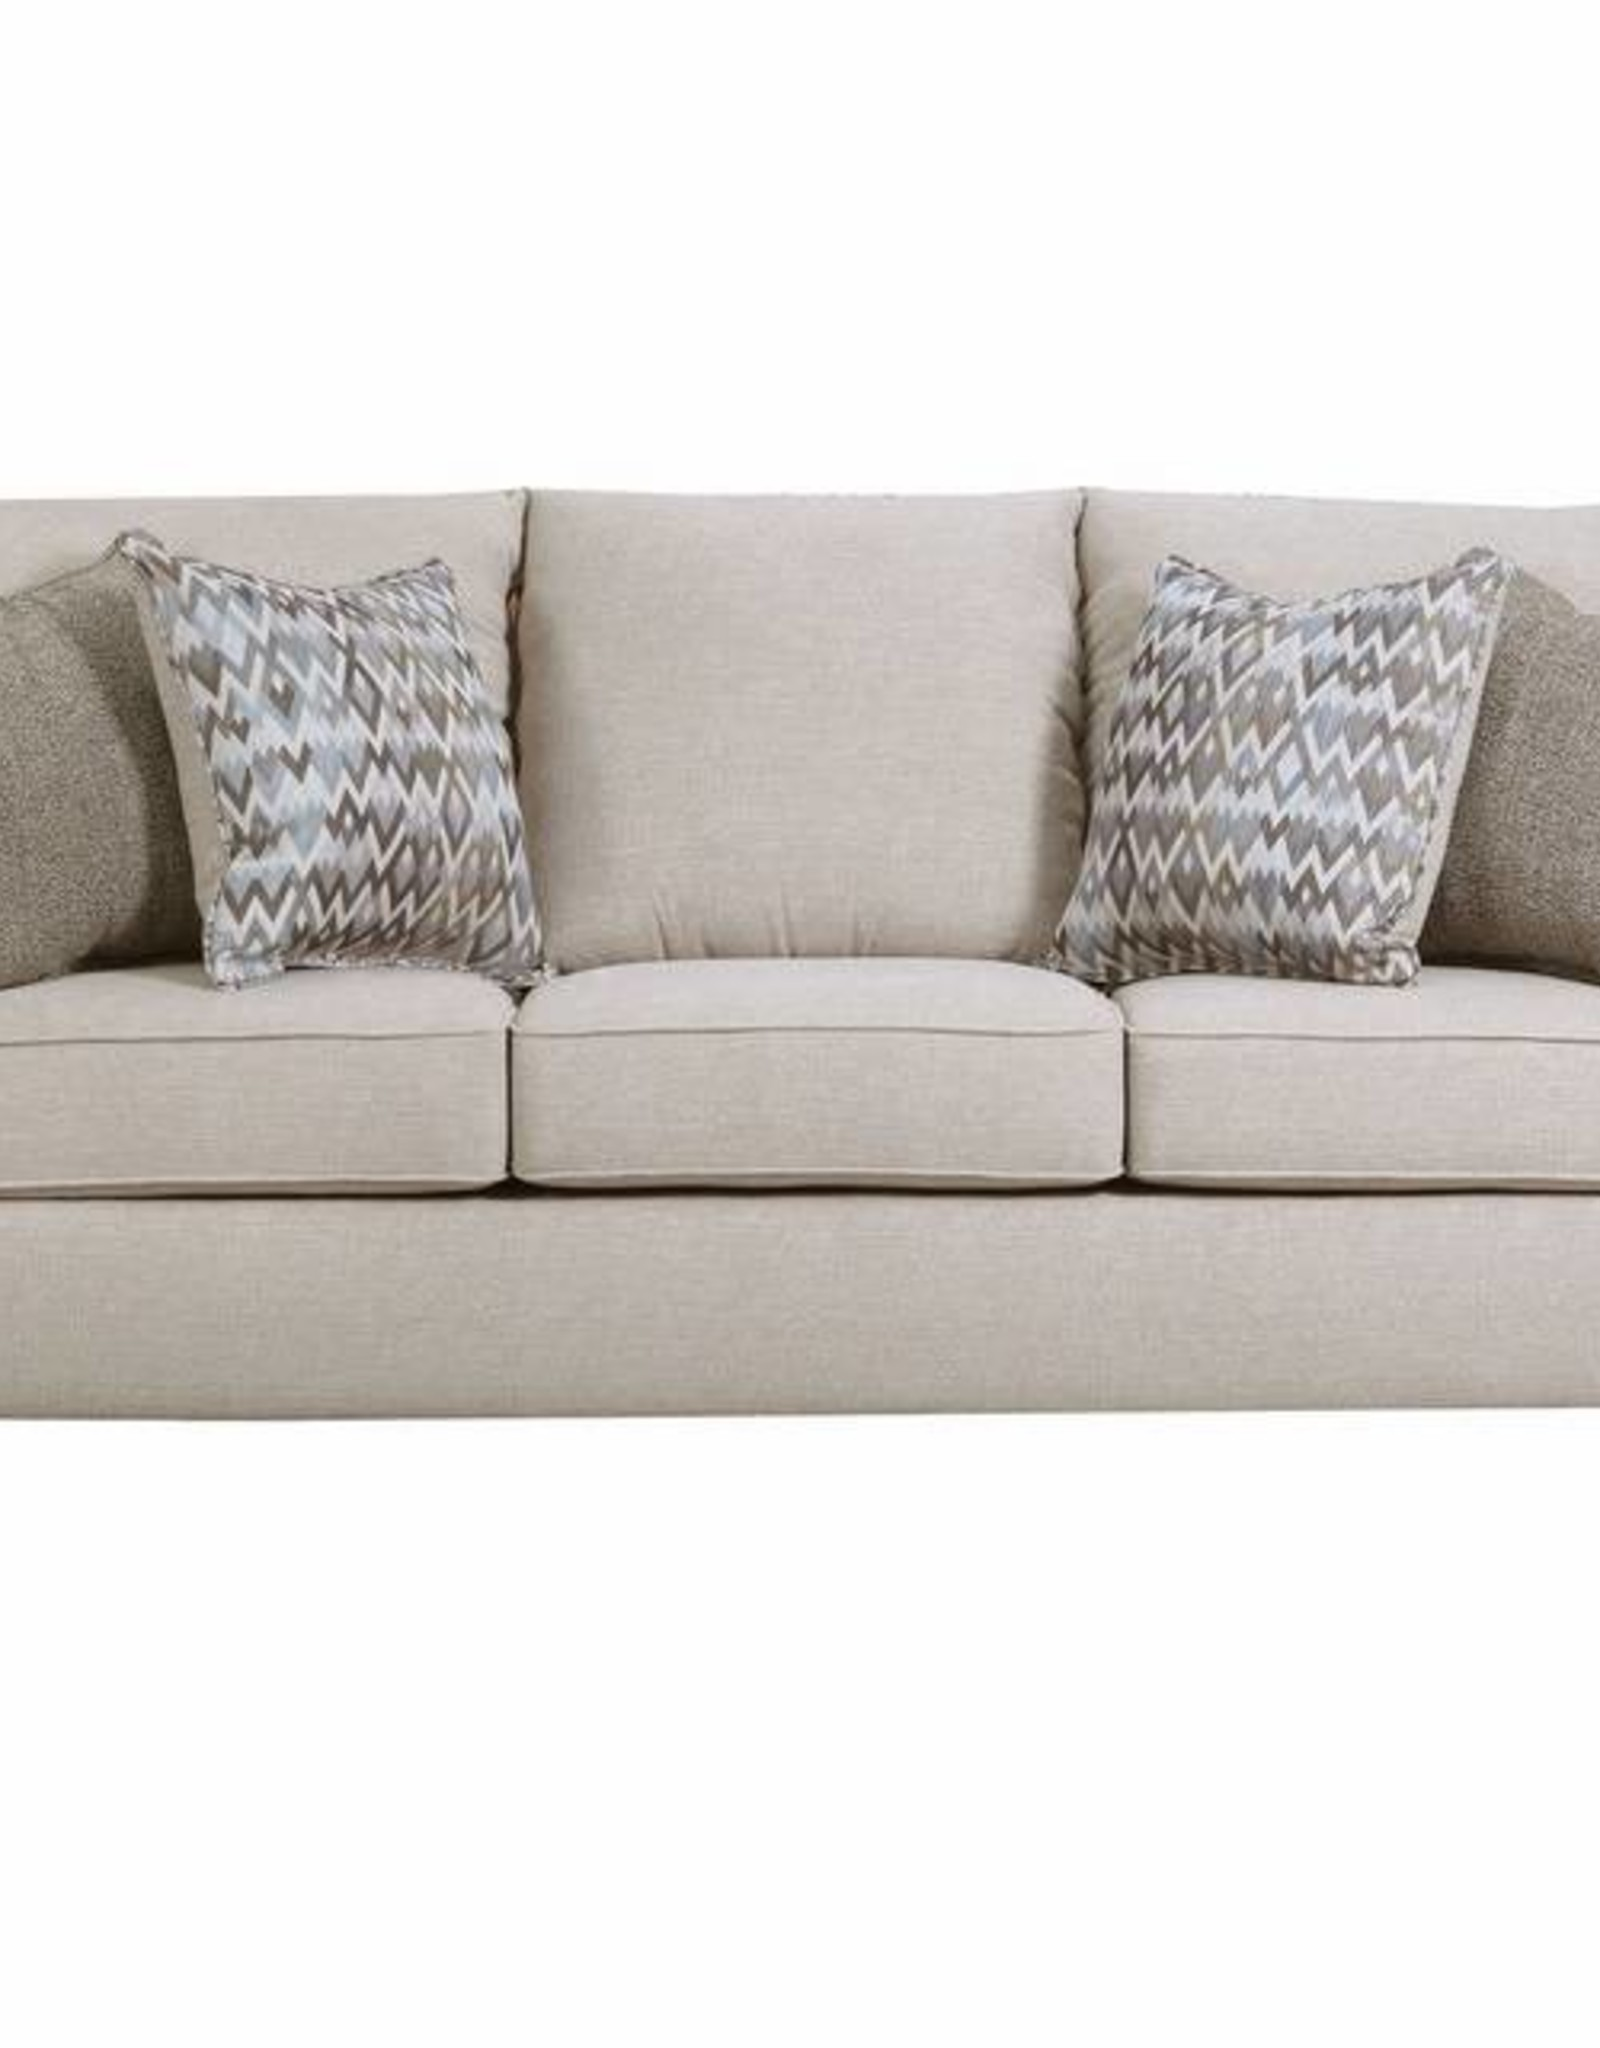 United Boston Linen Sofa